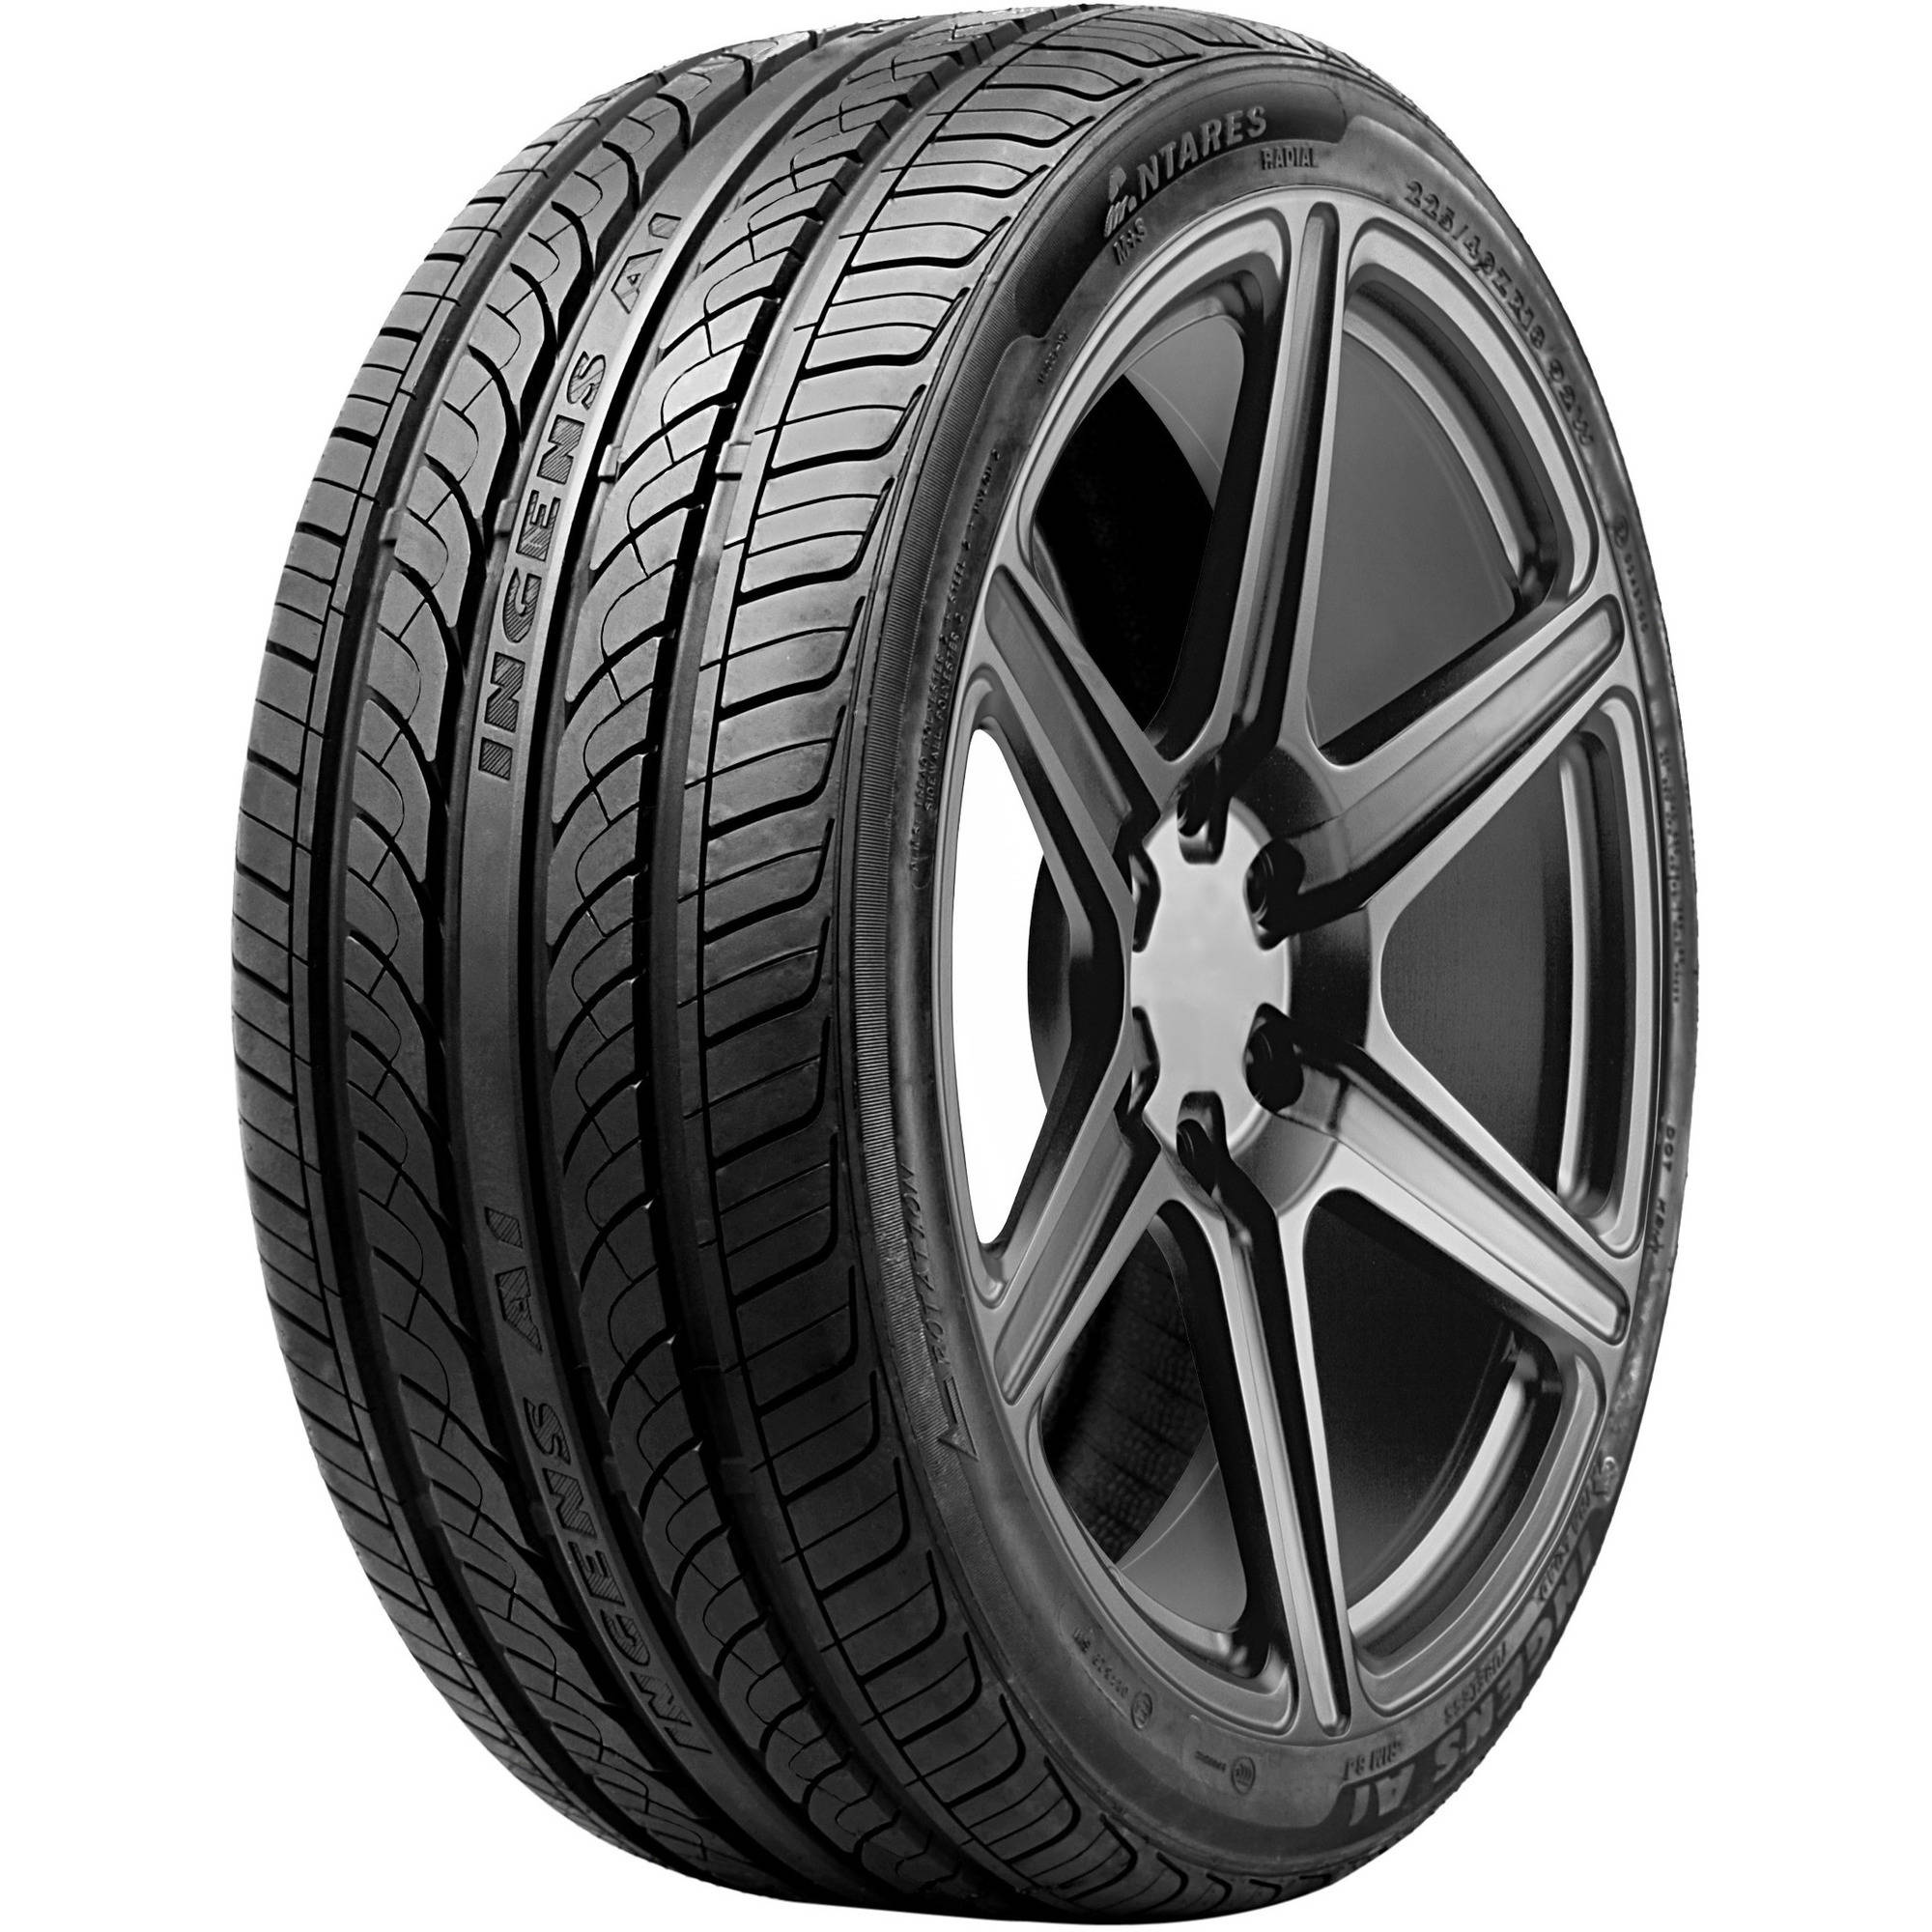 Antares Ingens A1 All-Season Tire - 225/45R18 95W